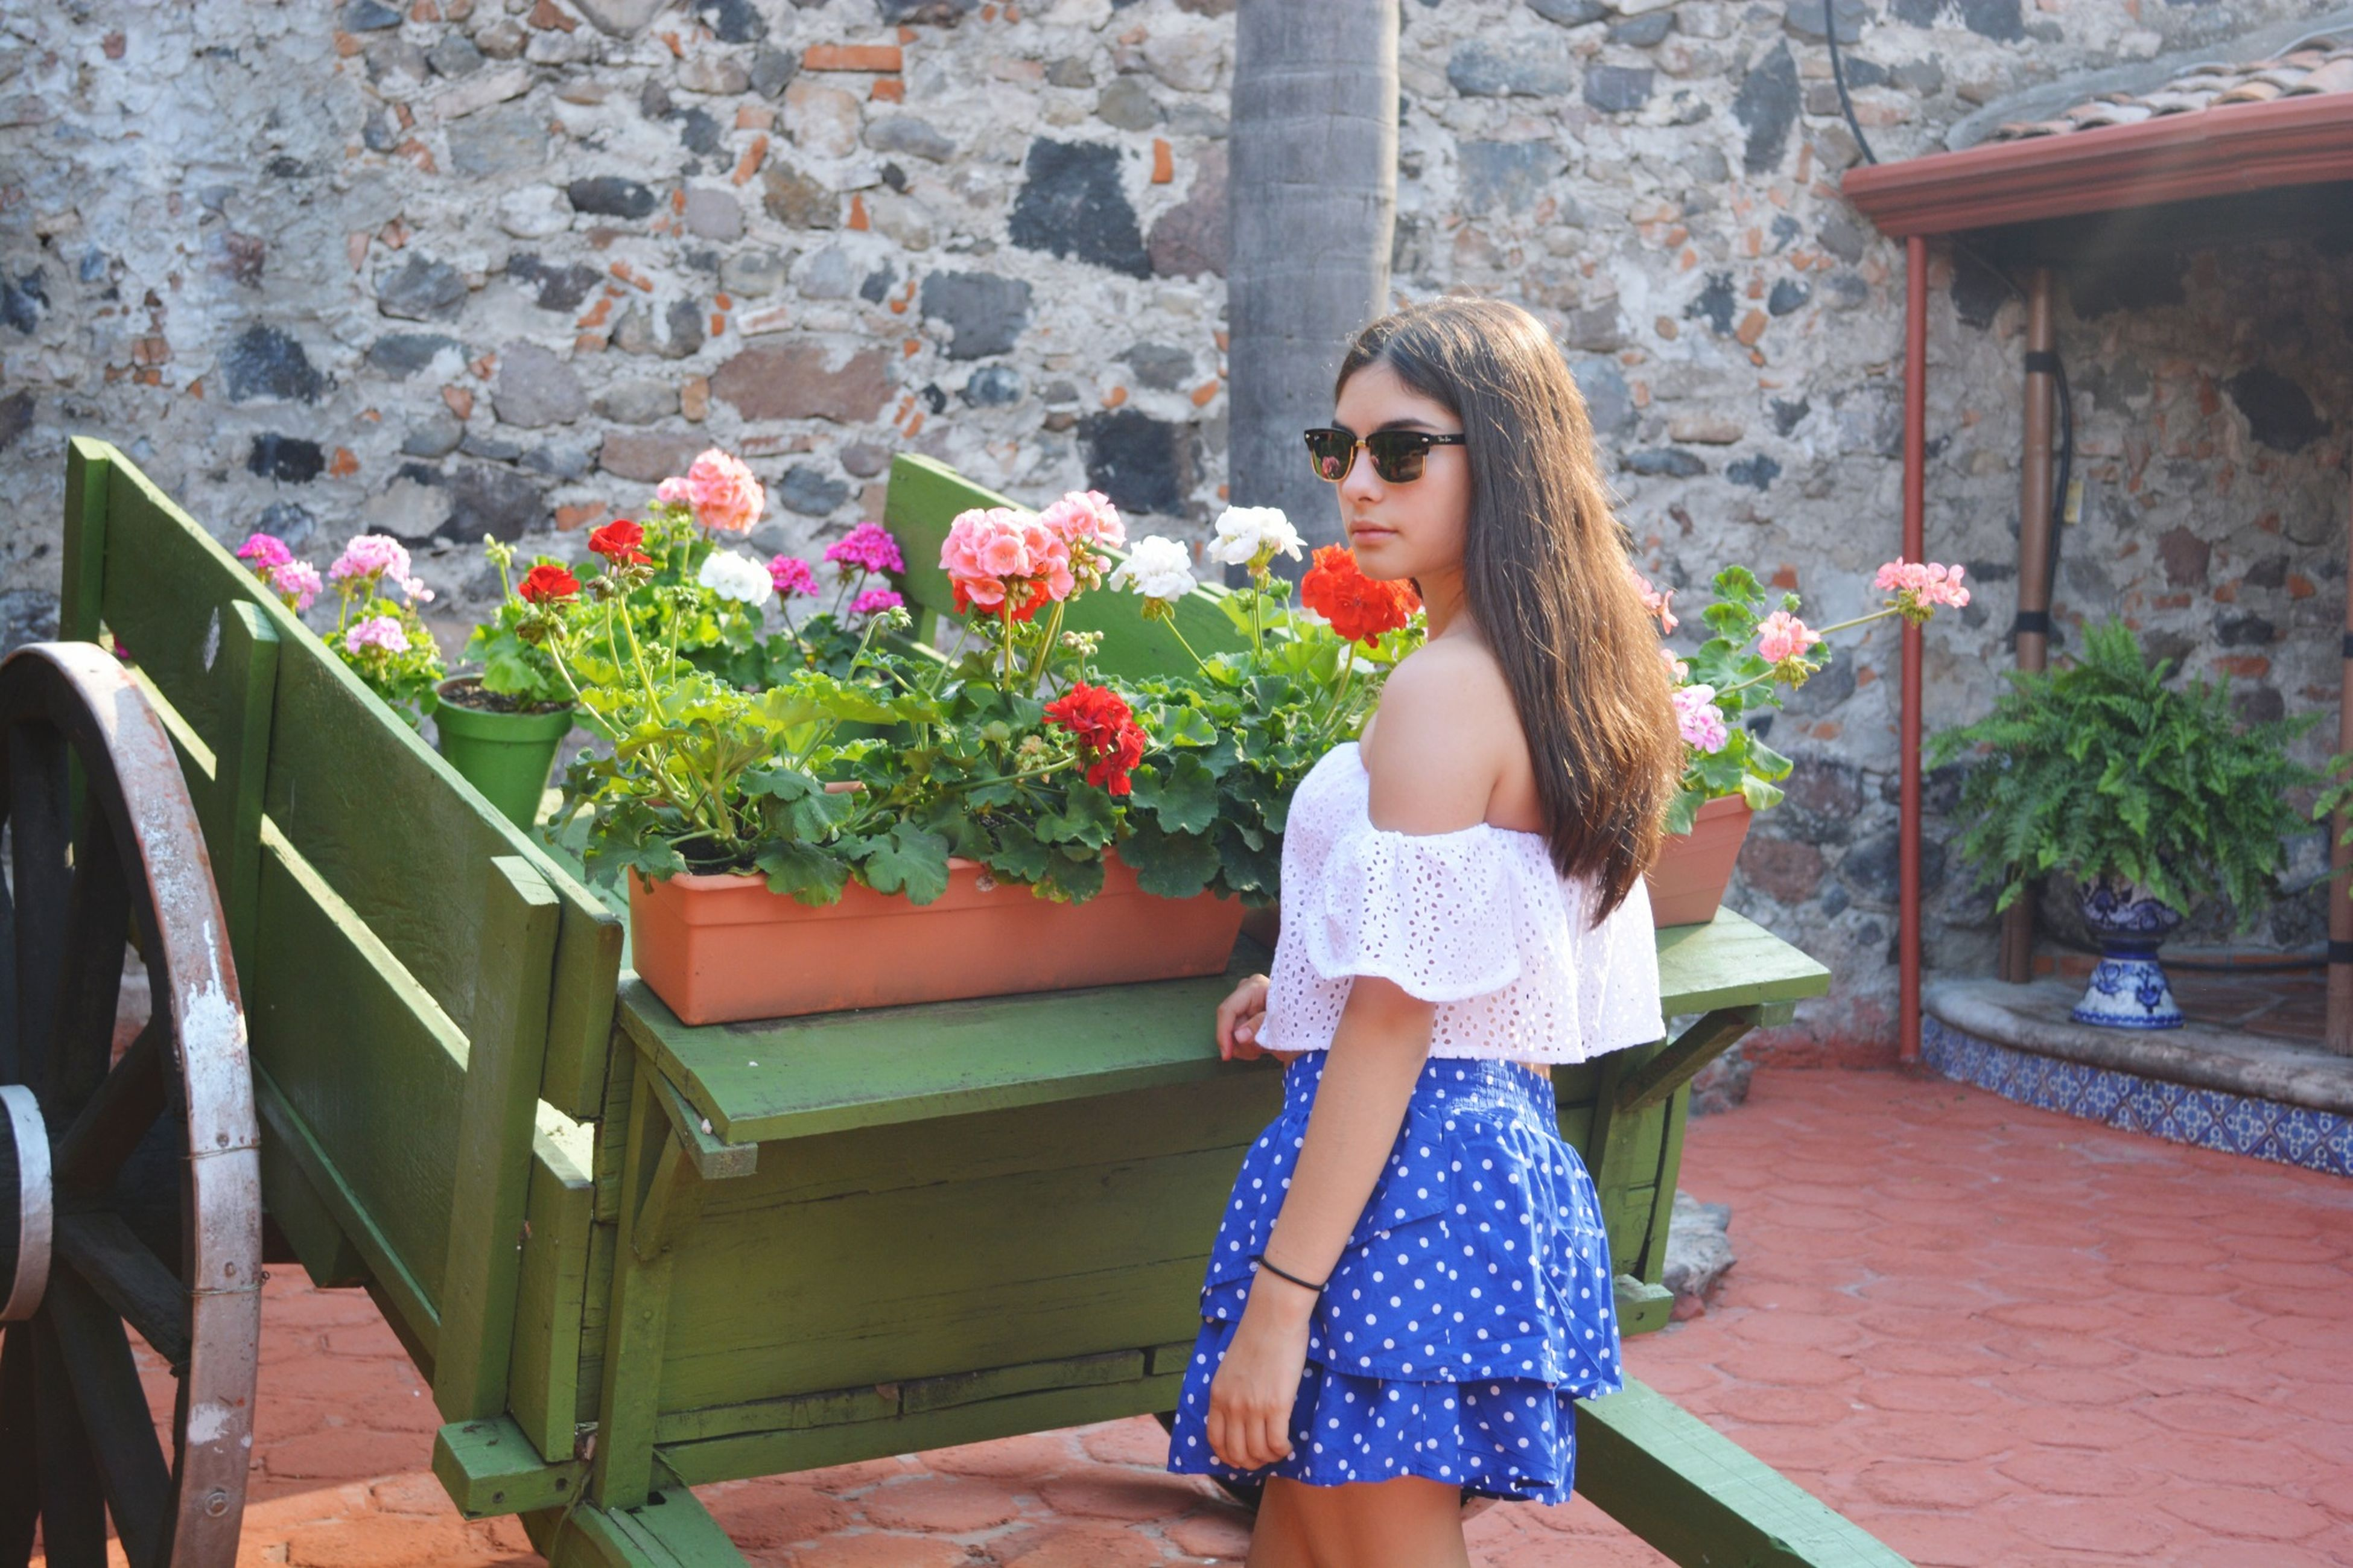 flower, casual clothing, lifestyles, building exterior, full length, built structure, standing, architecture, person, leisure activity, young adult, holding, young women, front view, potted plant, wall - building feature, plant, day